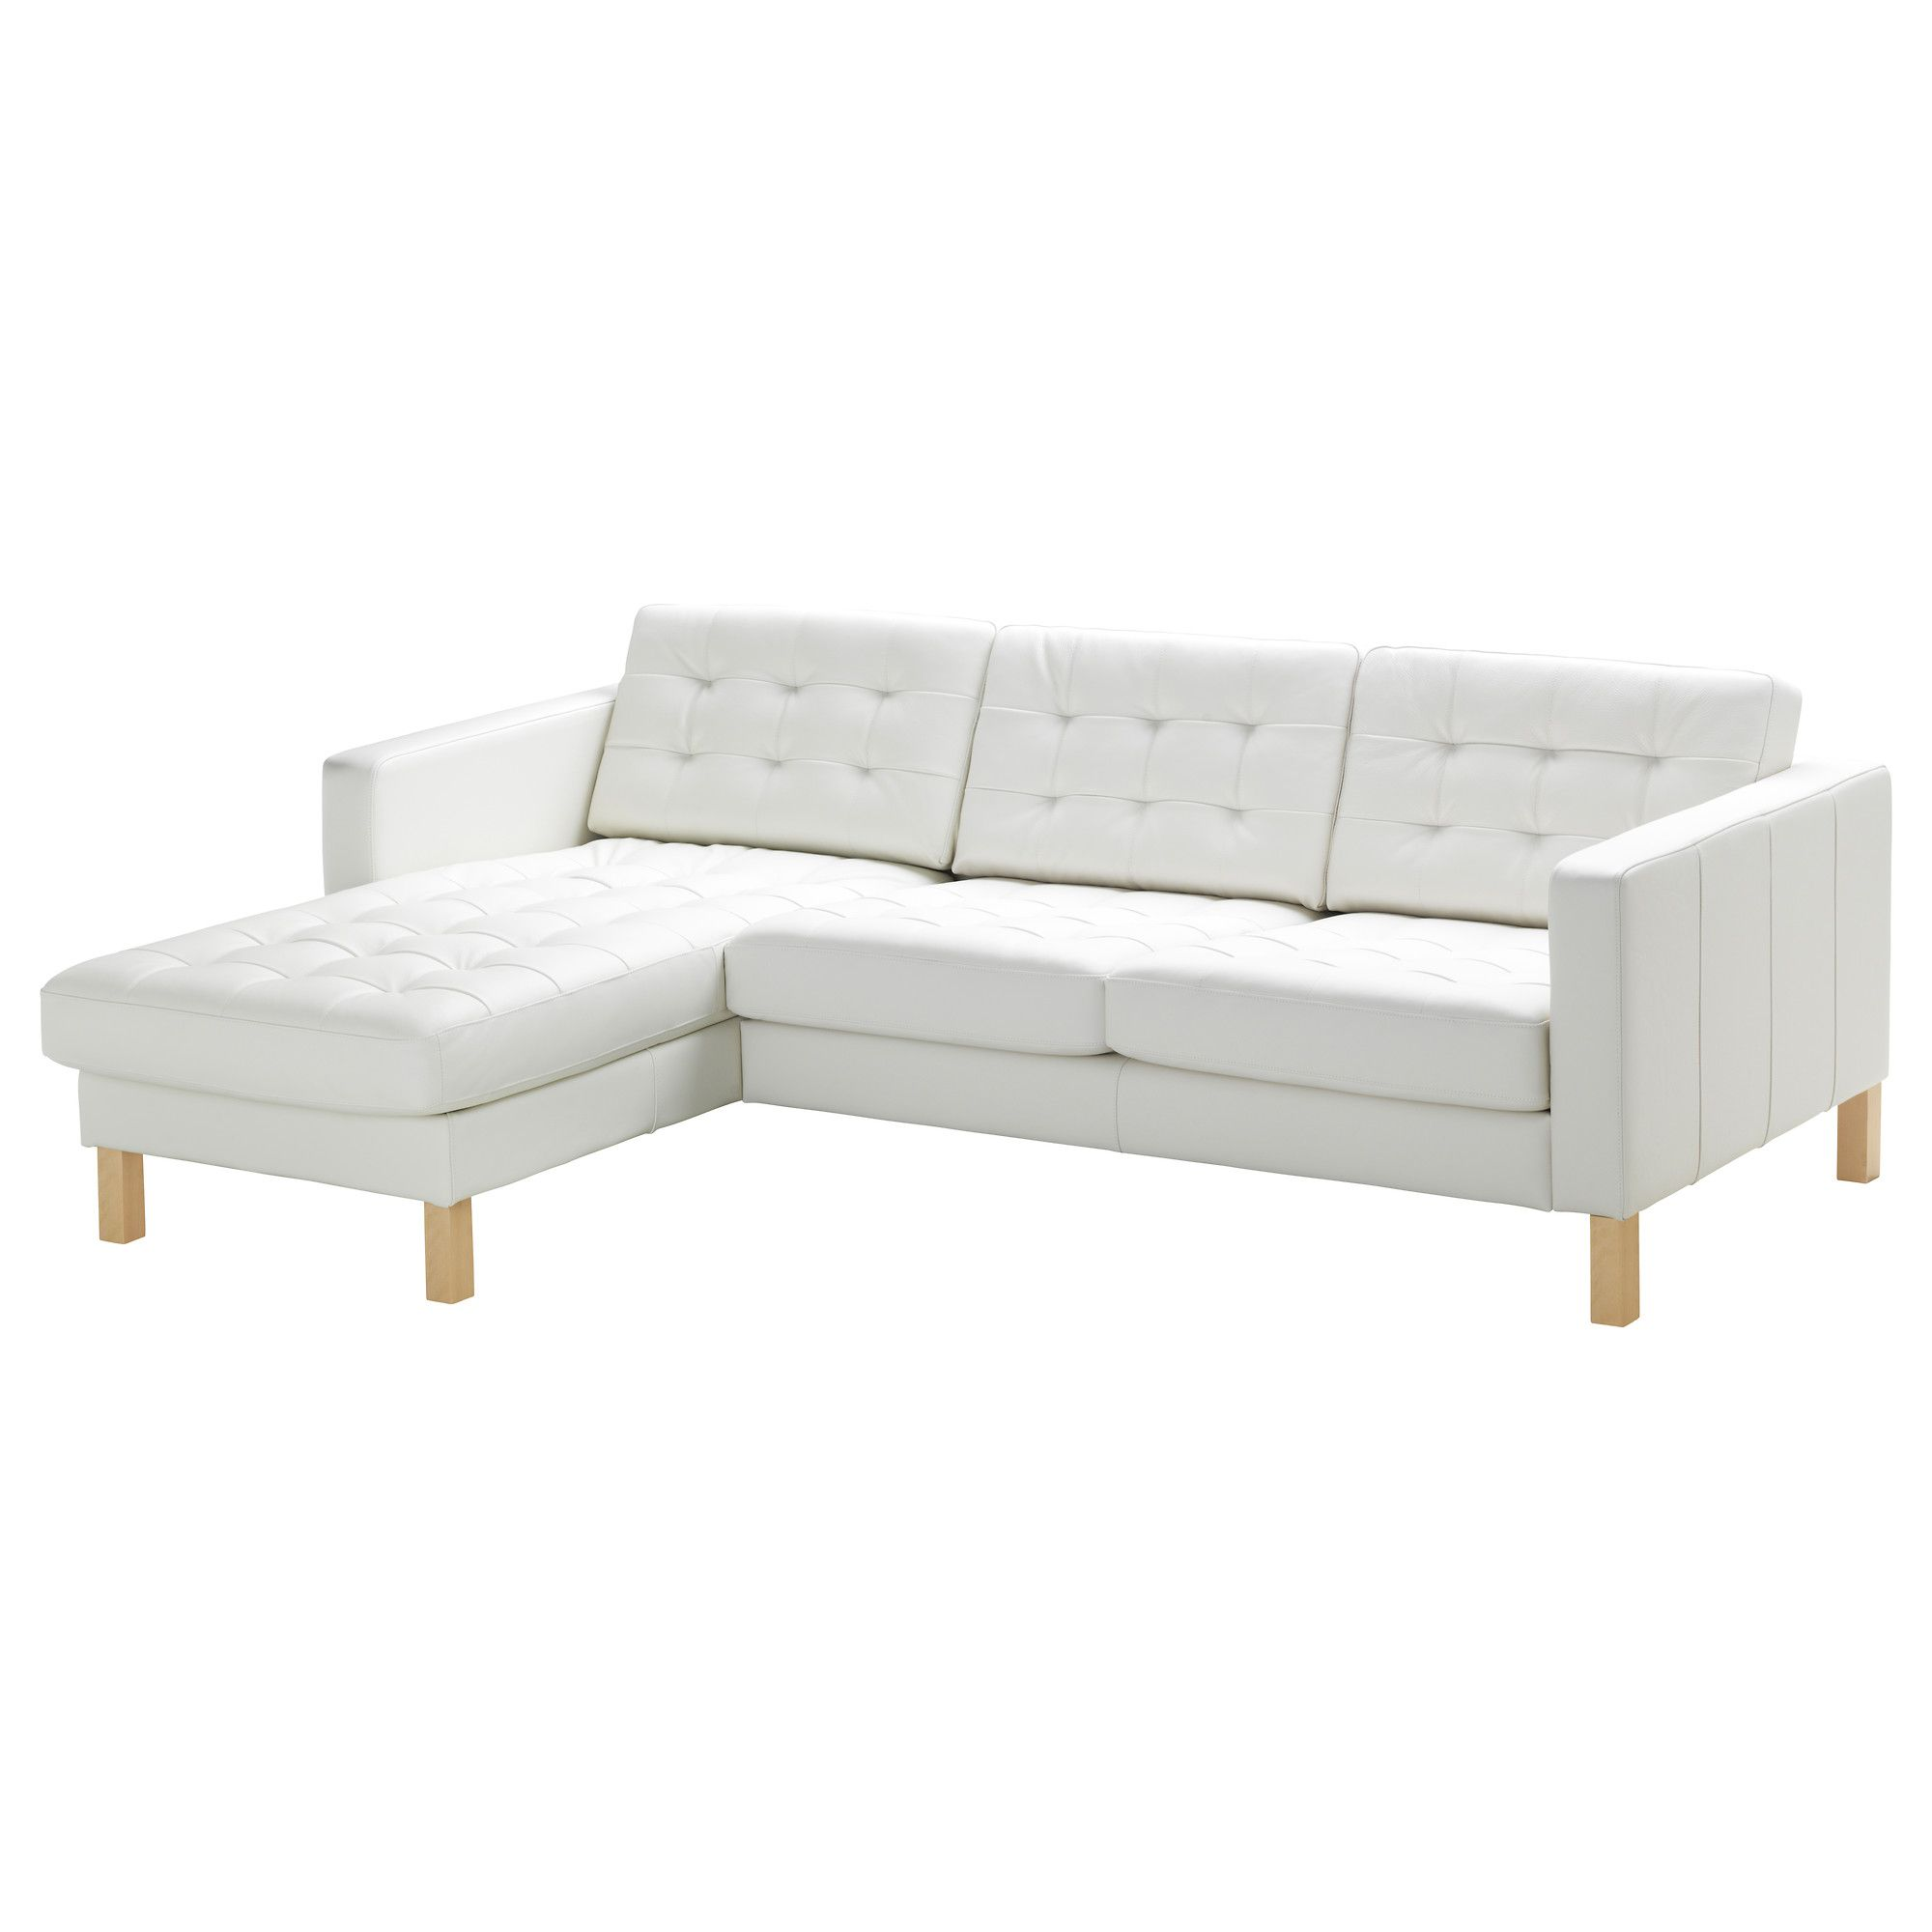 Ikea Us Furniture And Home Furnishings Love Seat Living Room Seating Chaise Lounge